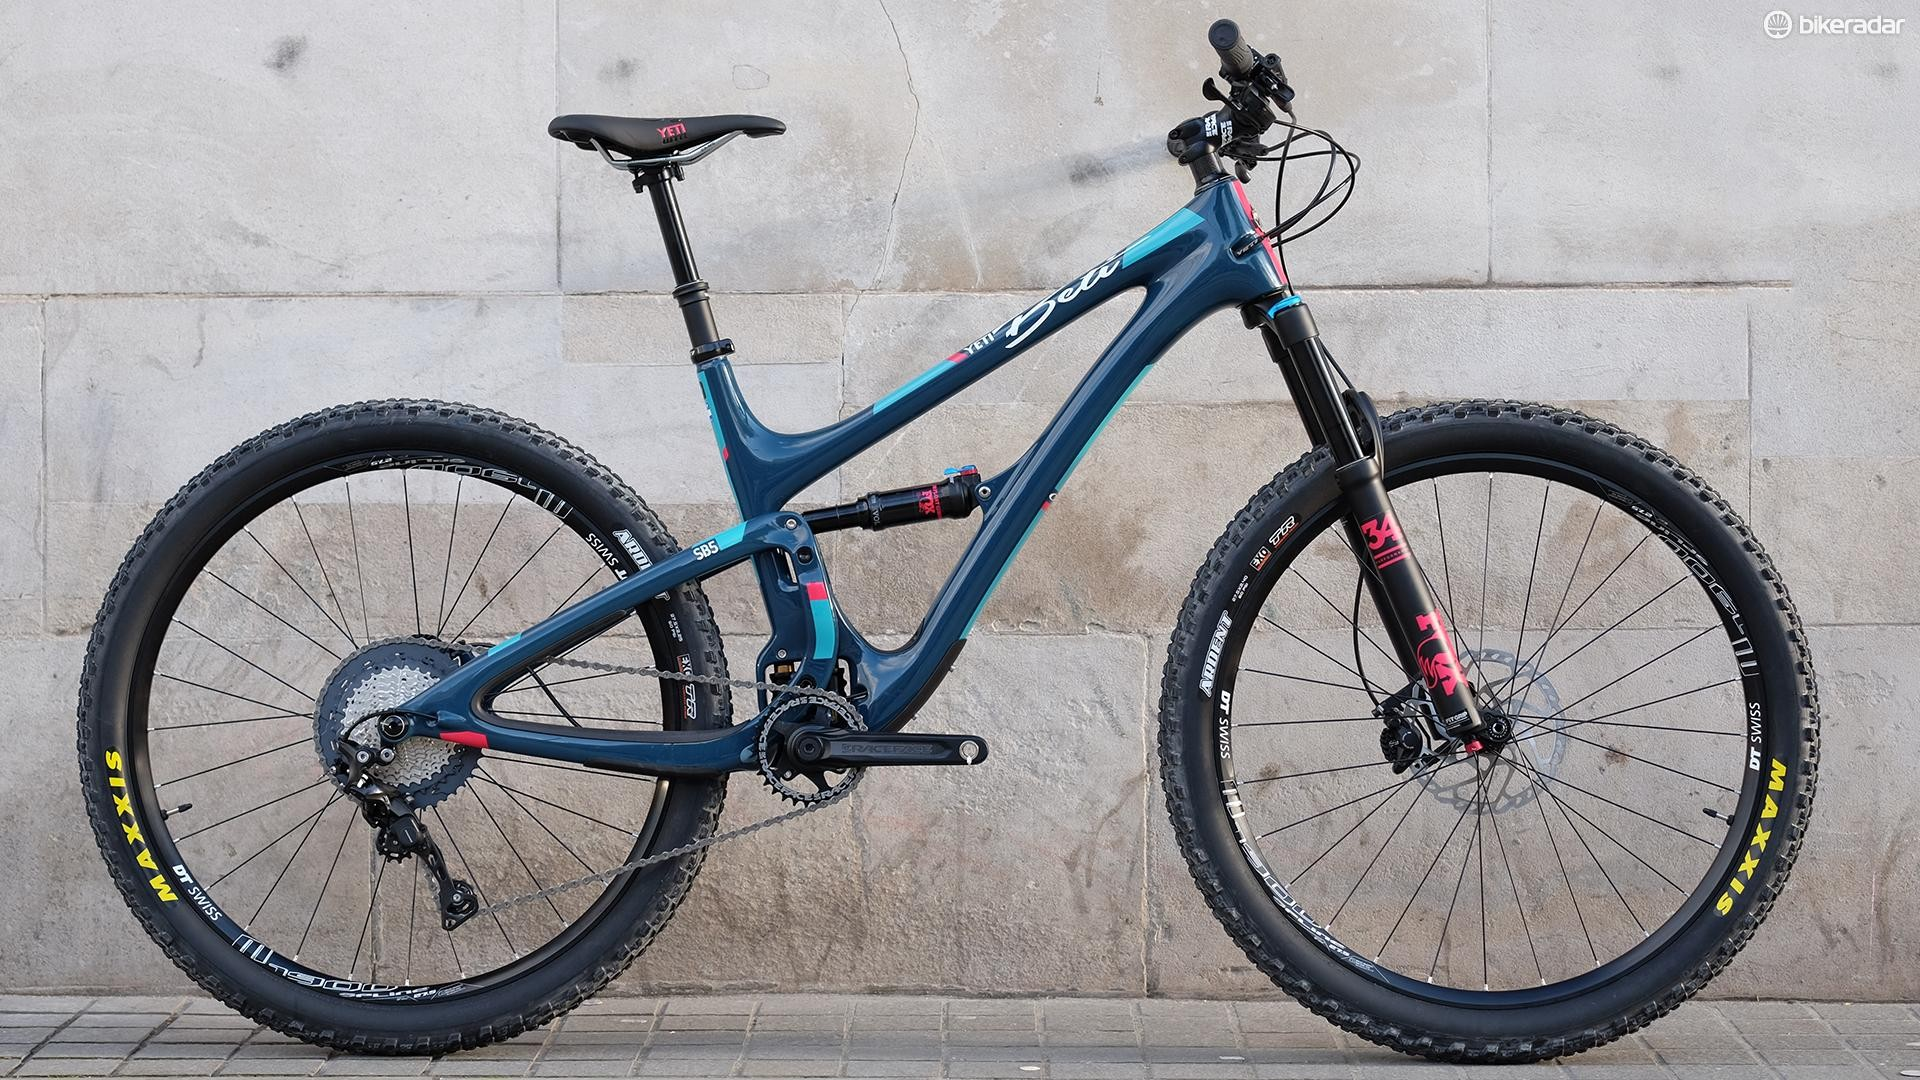 Dual Suspension Mountain Bikes With Free 14 Day Test Ride >> Best Women S Mountain Bikes Bikeradar